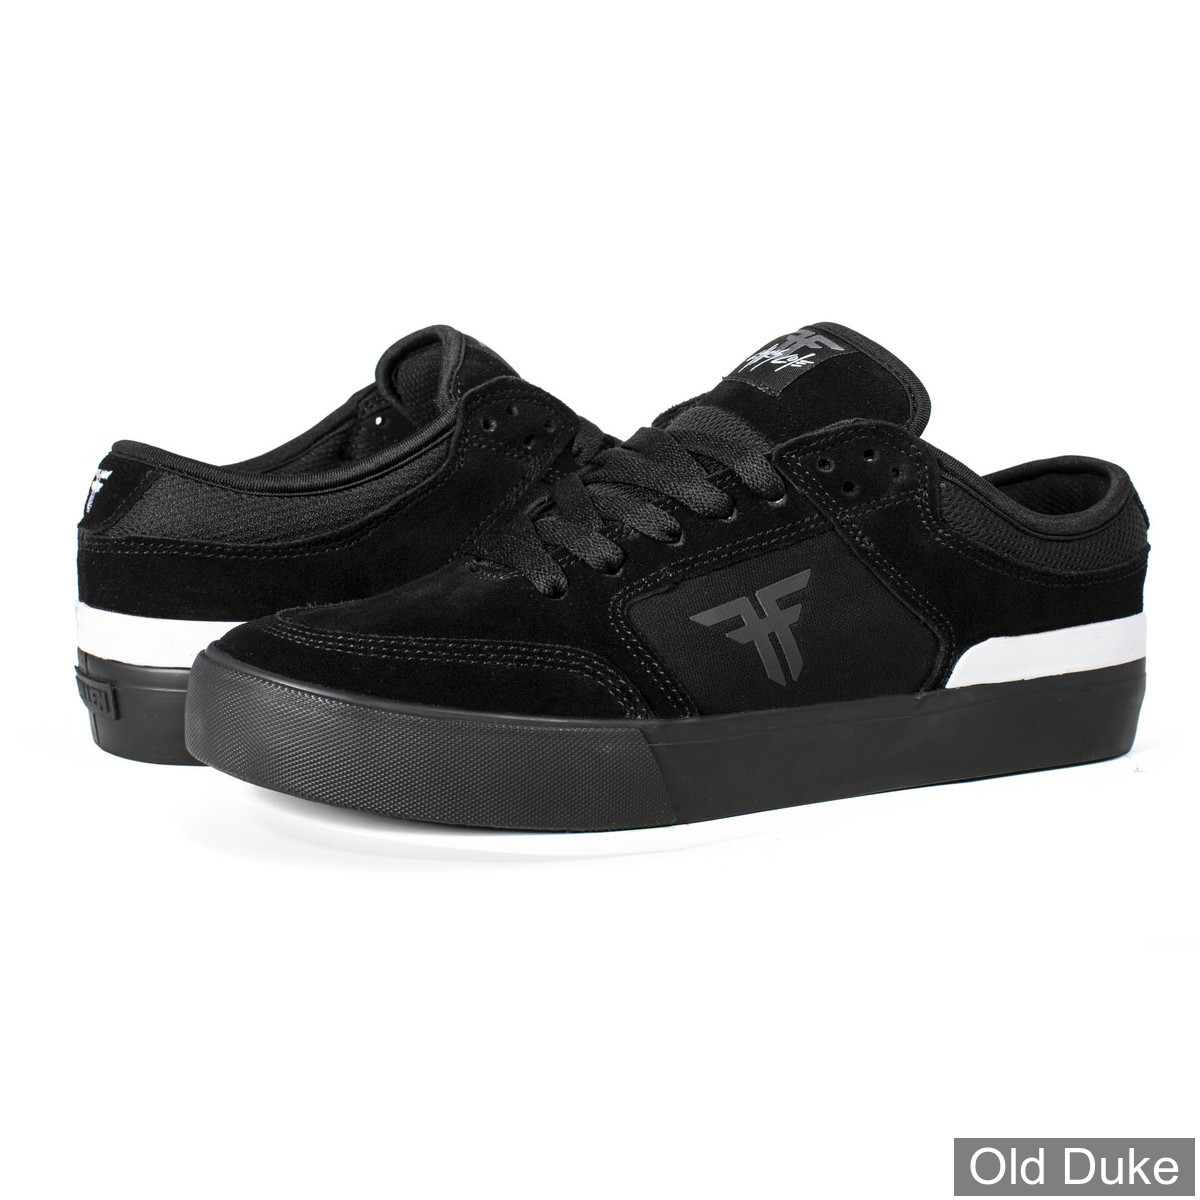 SKATE SHOES - FALLEN - RIPPER - BLACK BLACK WHITE - TAILLE : 39